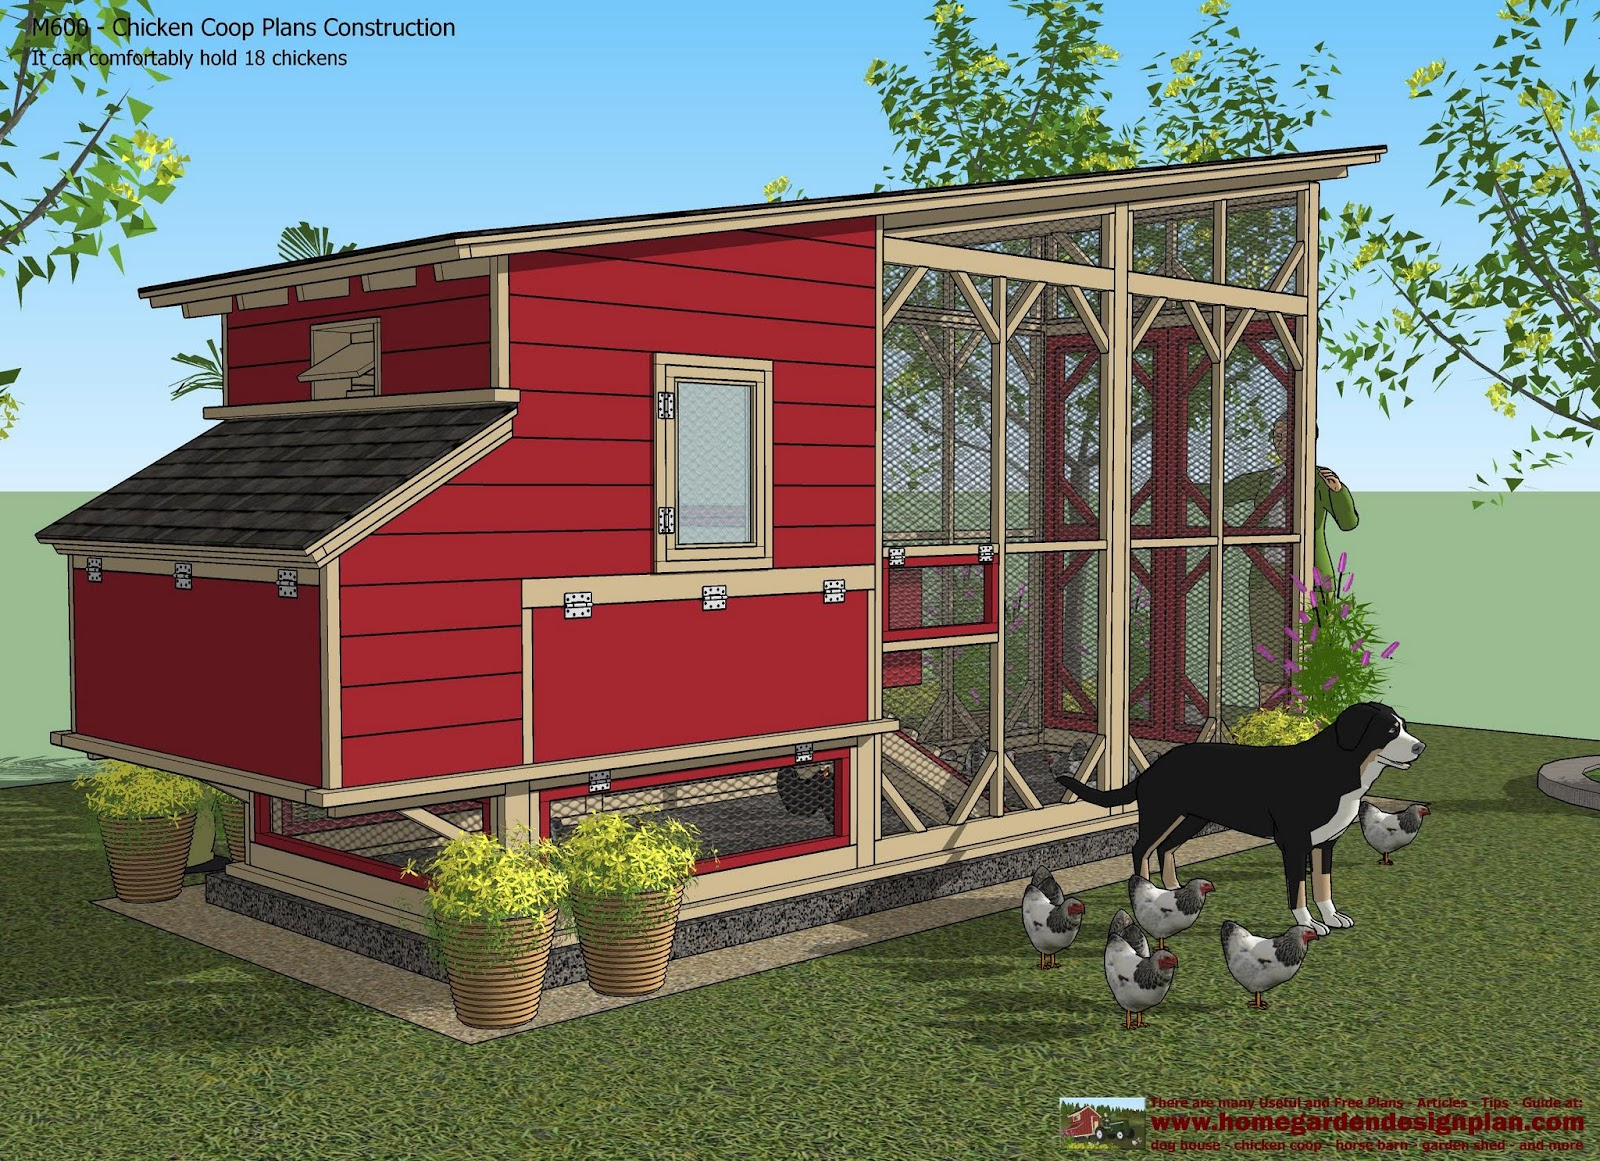 Chcken Coop: M600 Chicken Coop Plans Construction Chicken ...